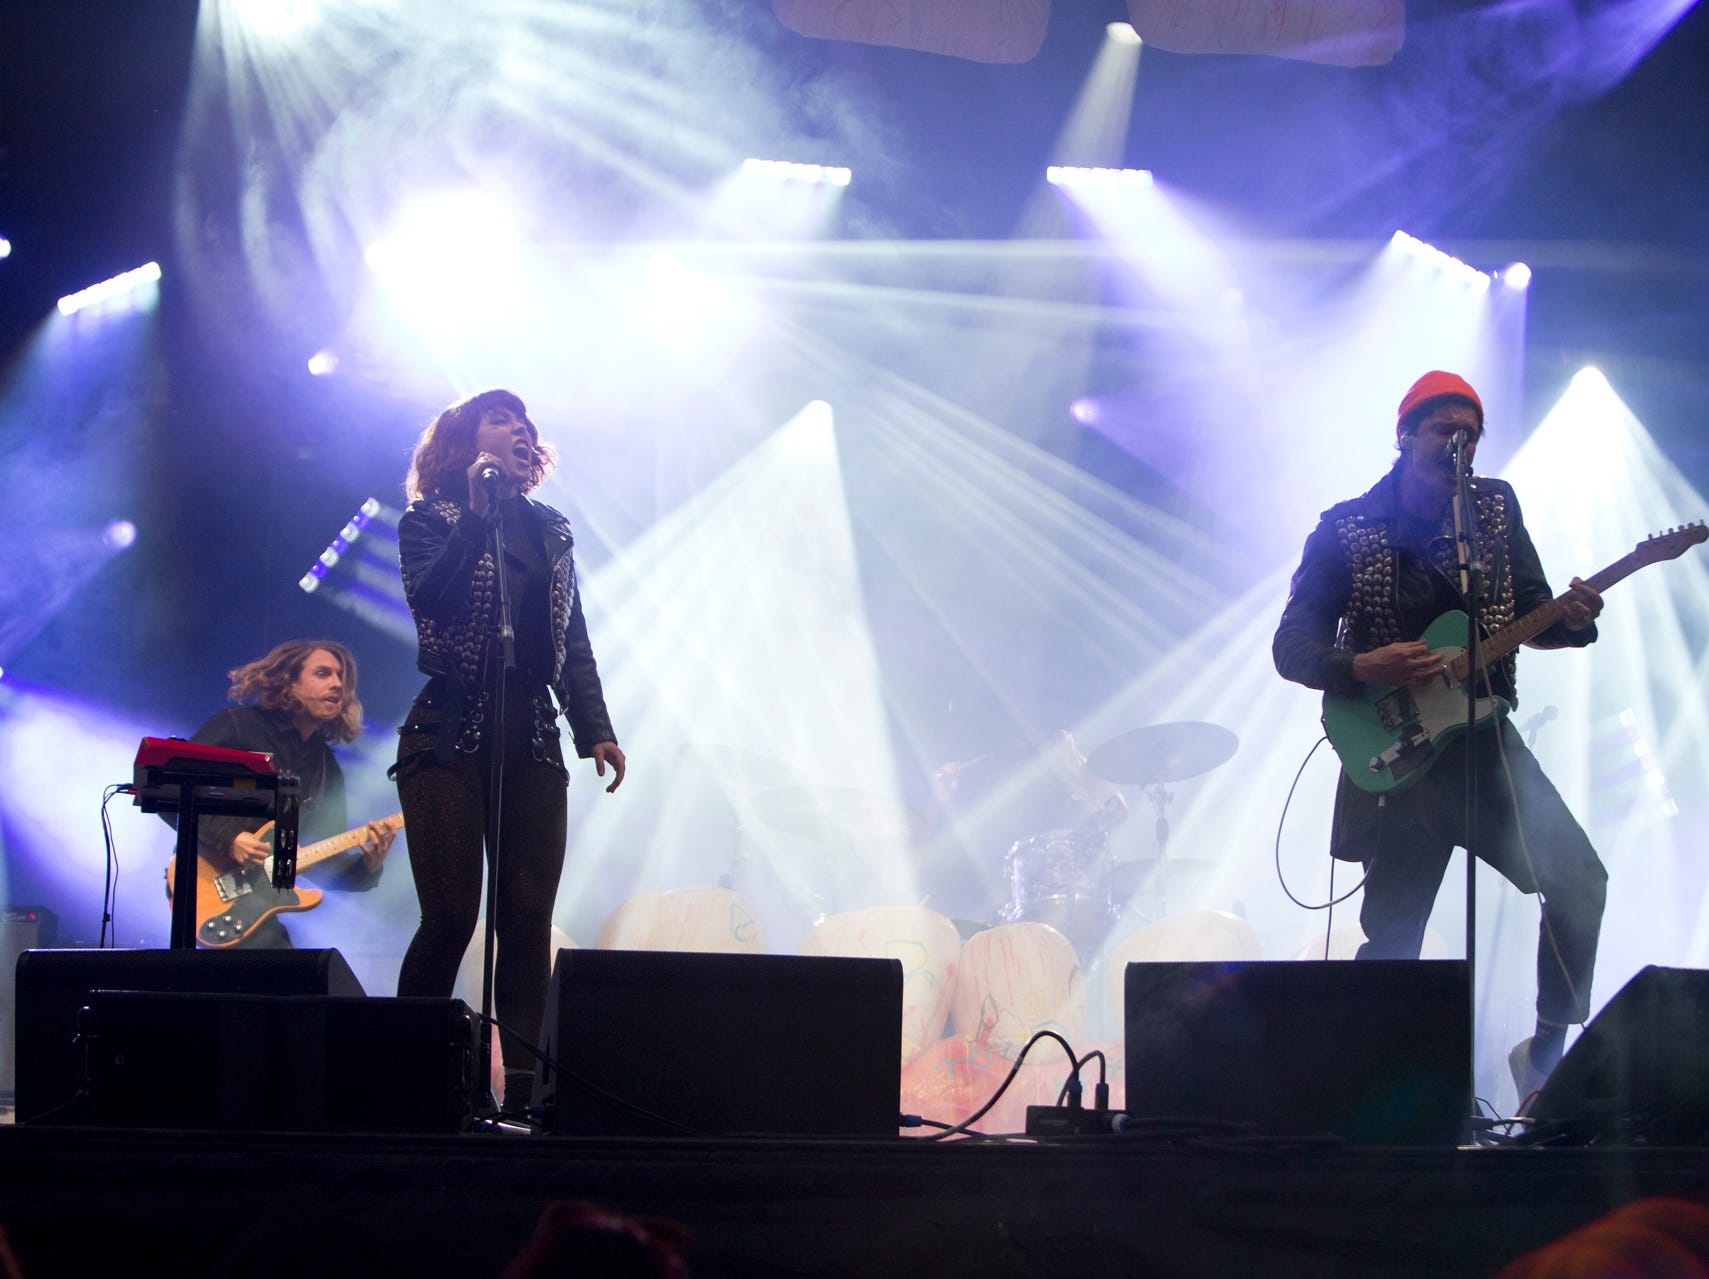 Grouplove performs during the Innings Festival on March 2, 2019, at Tempe Beach Park.